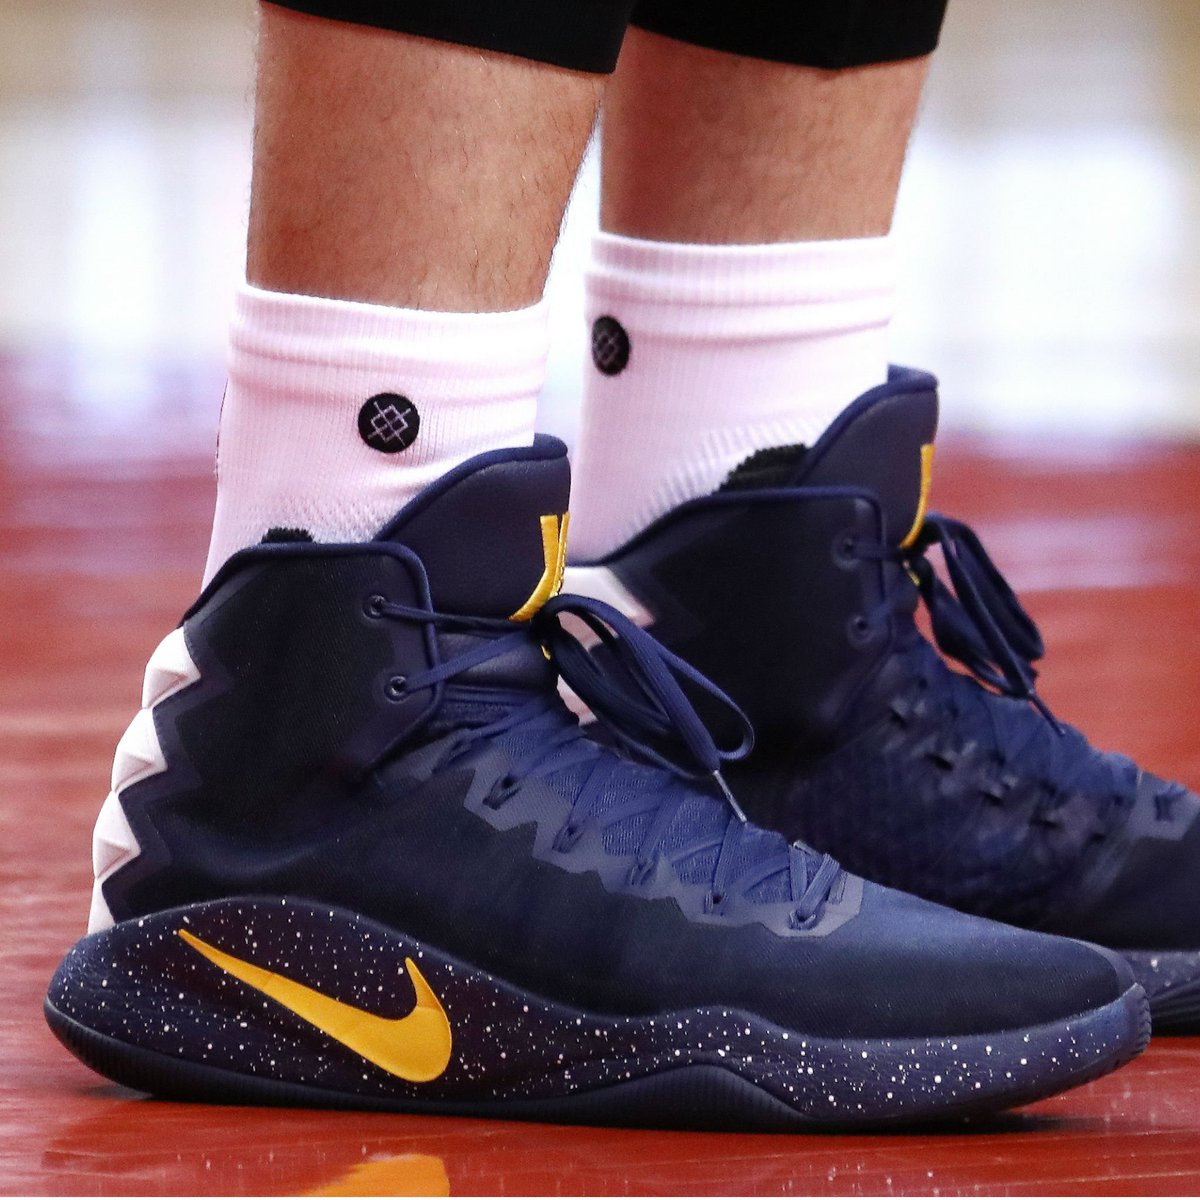 c2bfe9cf8d027 solewatch kevinlove wearing a nike hyperdunk 2016 pe in game 4 defendtheland